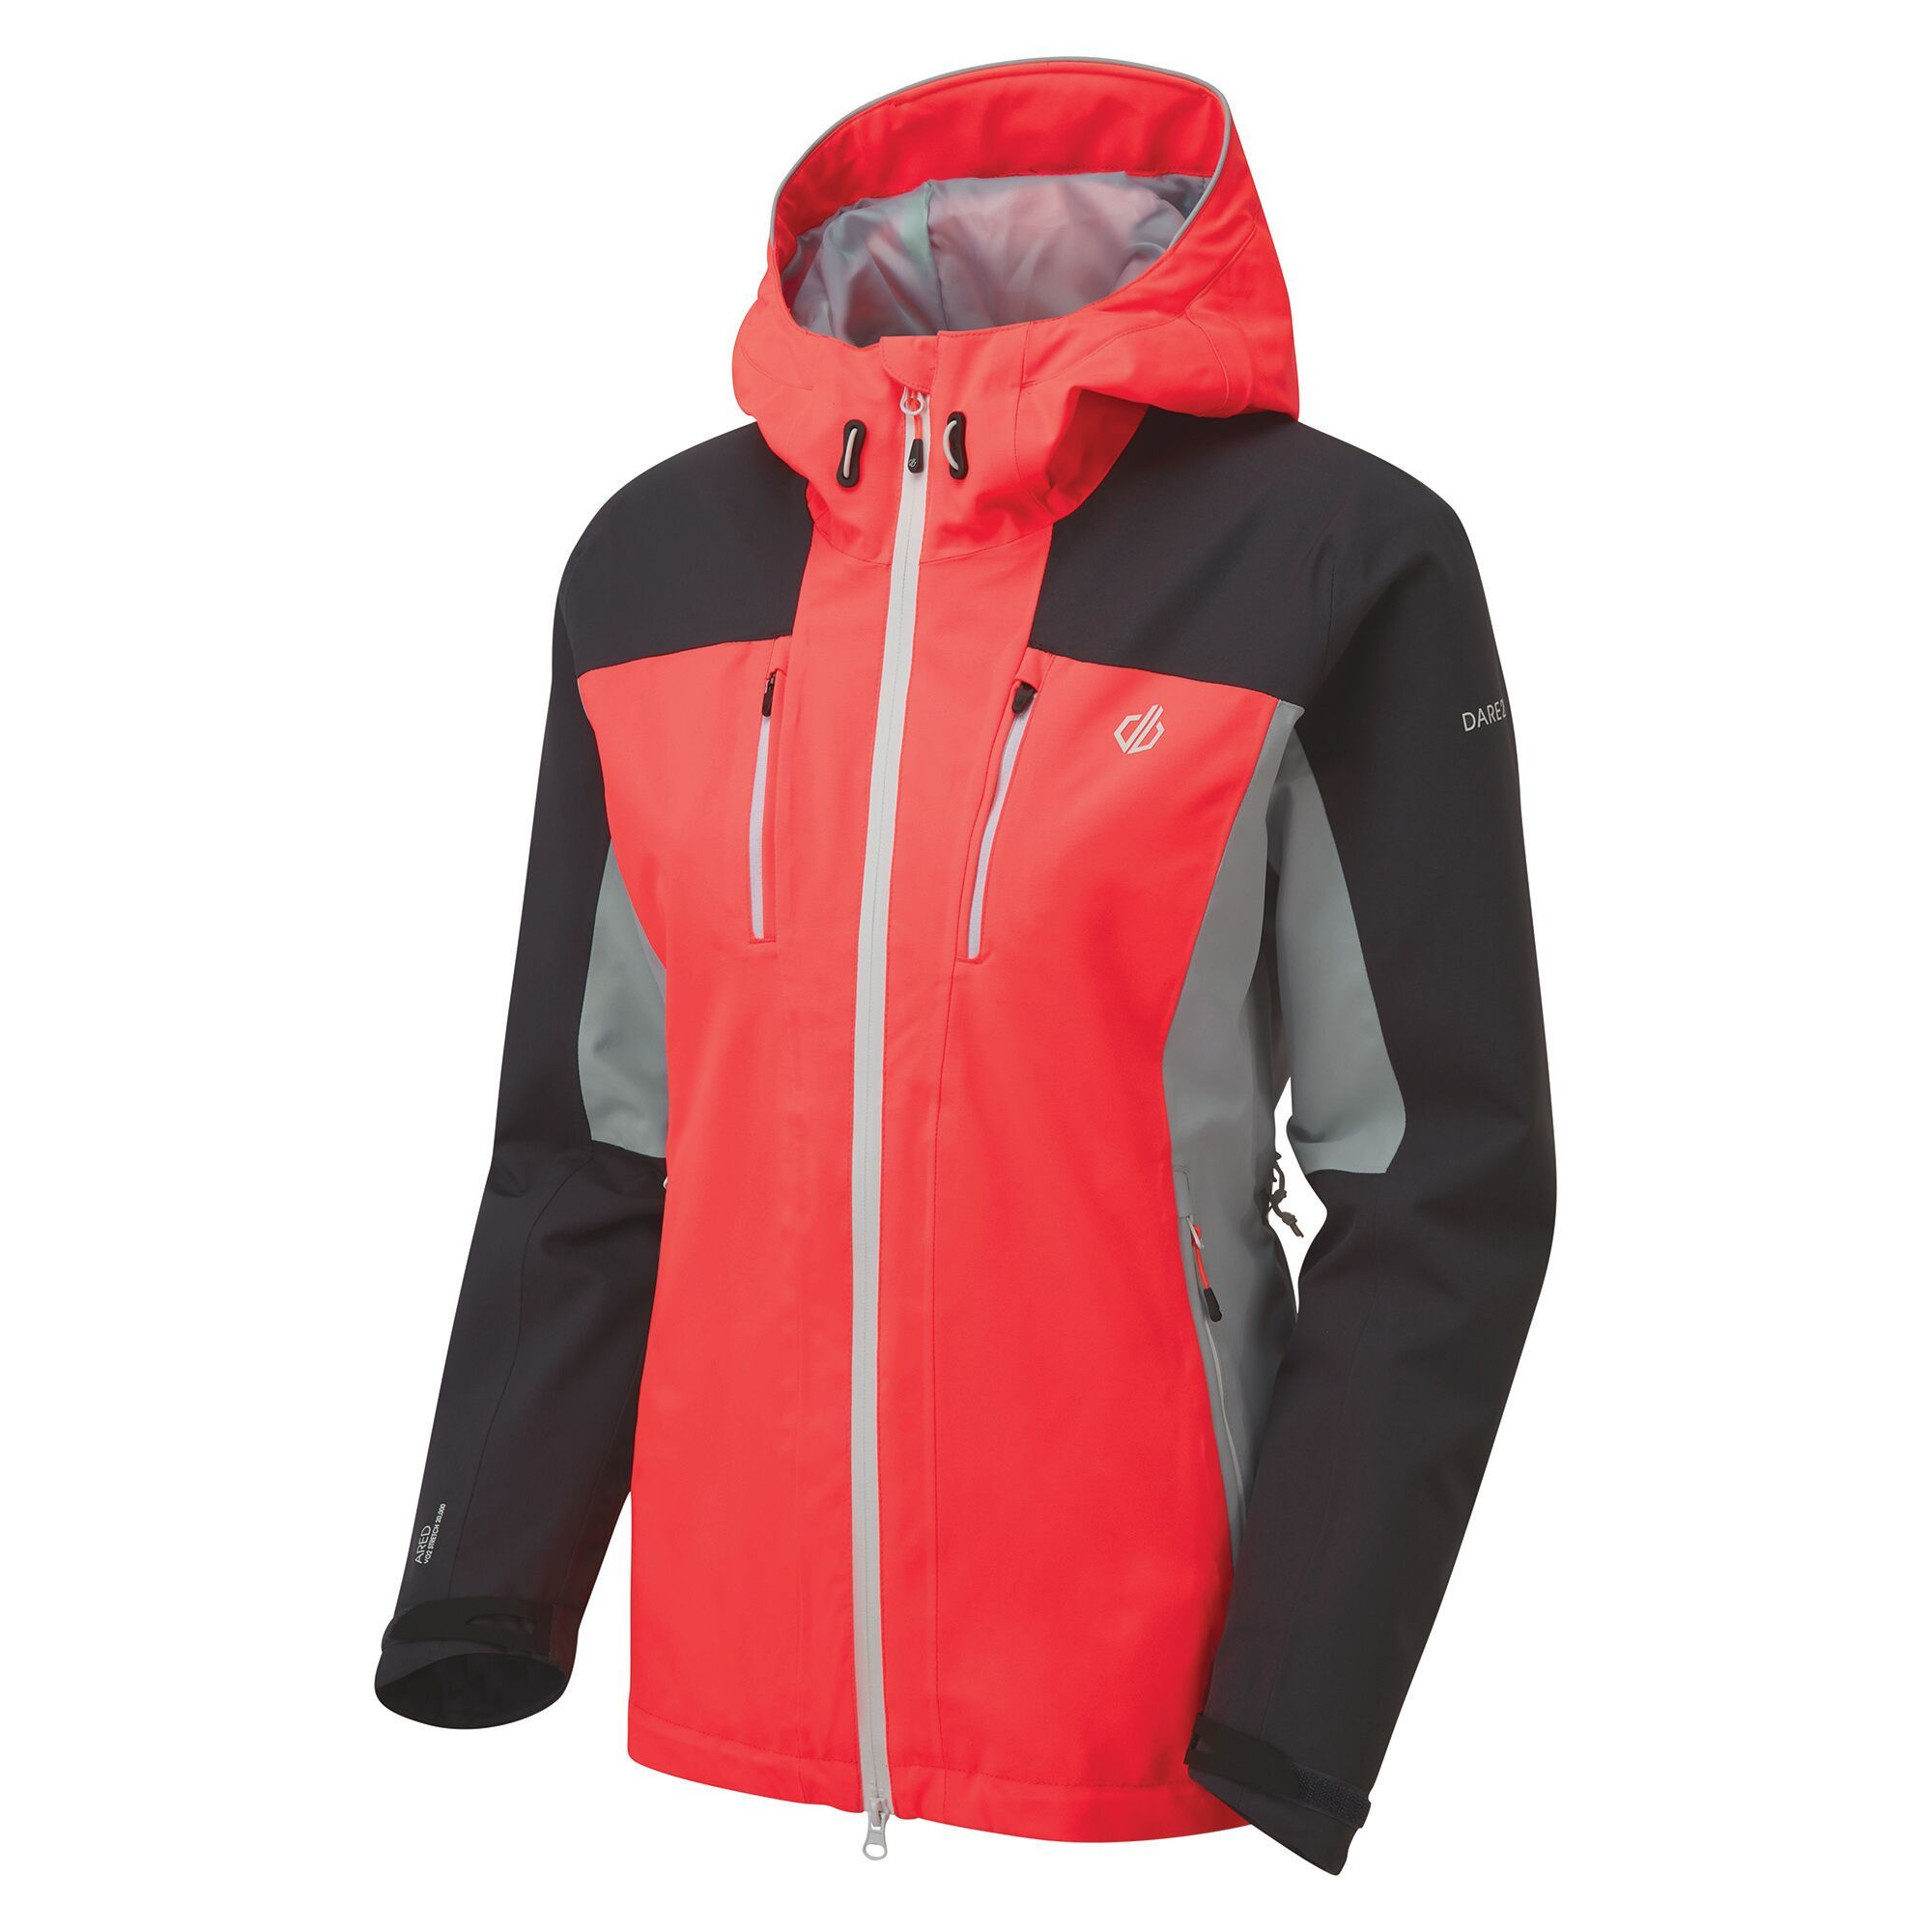 DARE2B Immense Jkt. - Damen Outdoorjacke wasserdicht orange